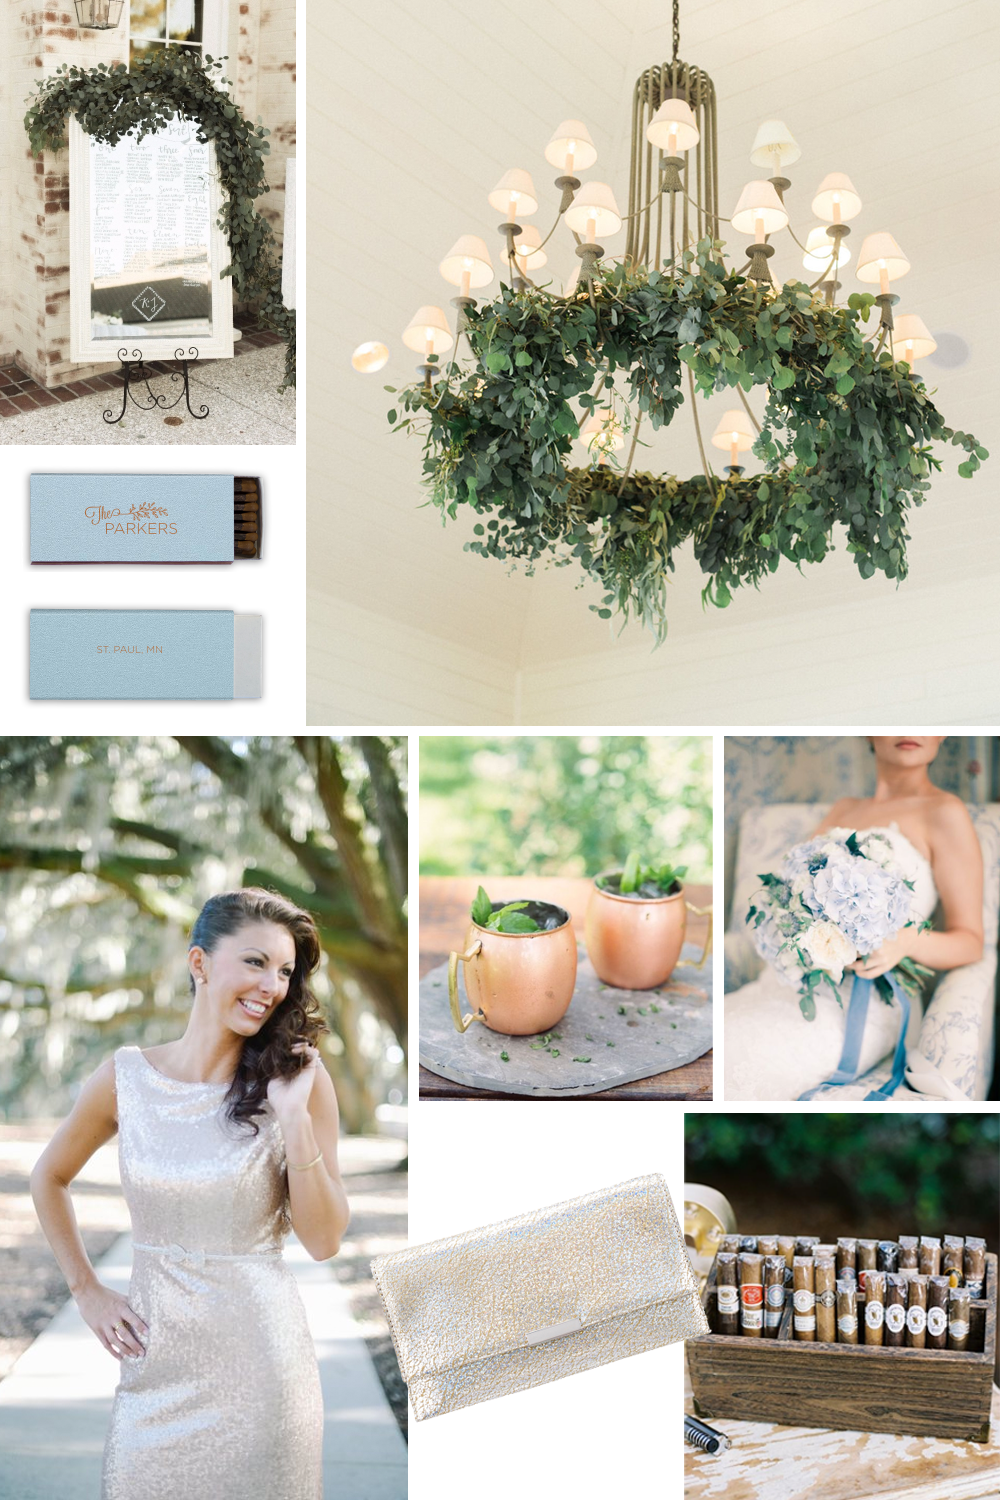 belfair-plantation-wedding-savannah-wedding-planner-ivory-and-beau-southern-wedding-inspiration-southern-wedding-belfair-plantation-southern-wedding.png